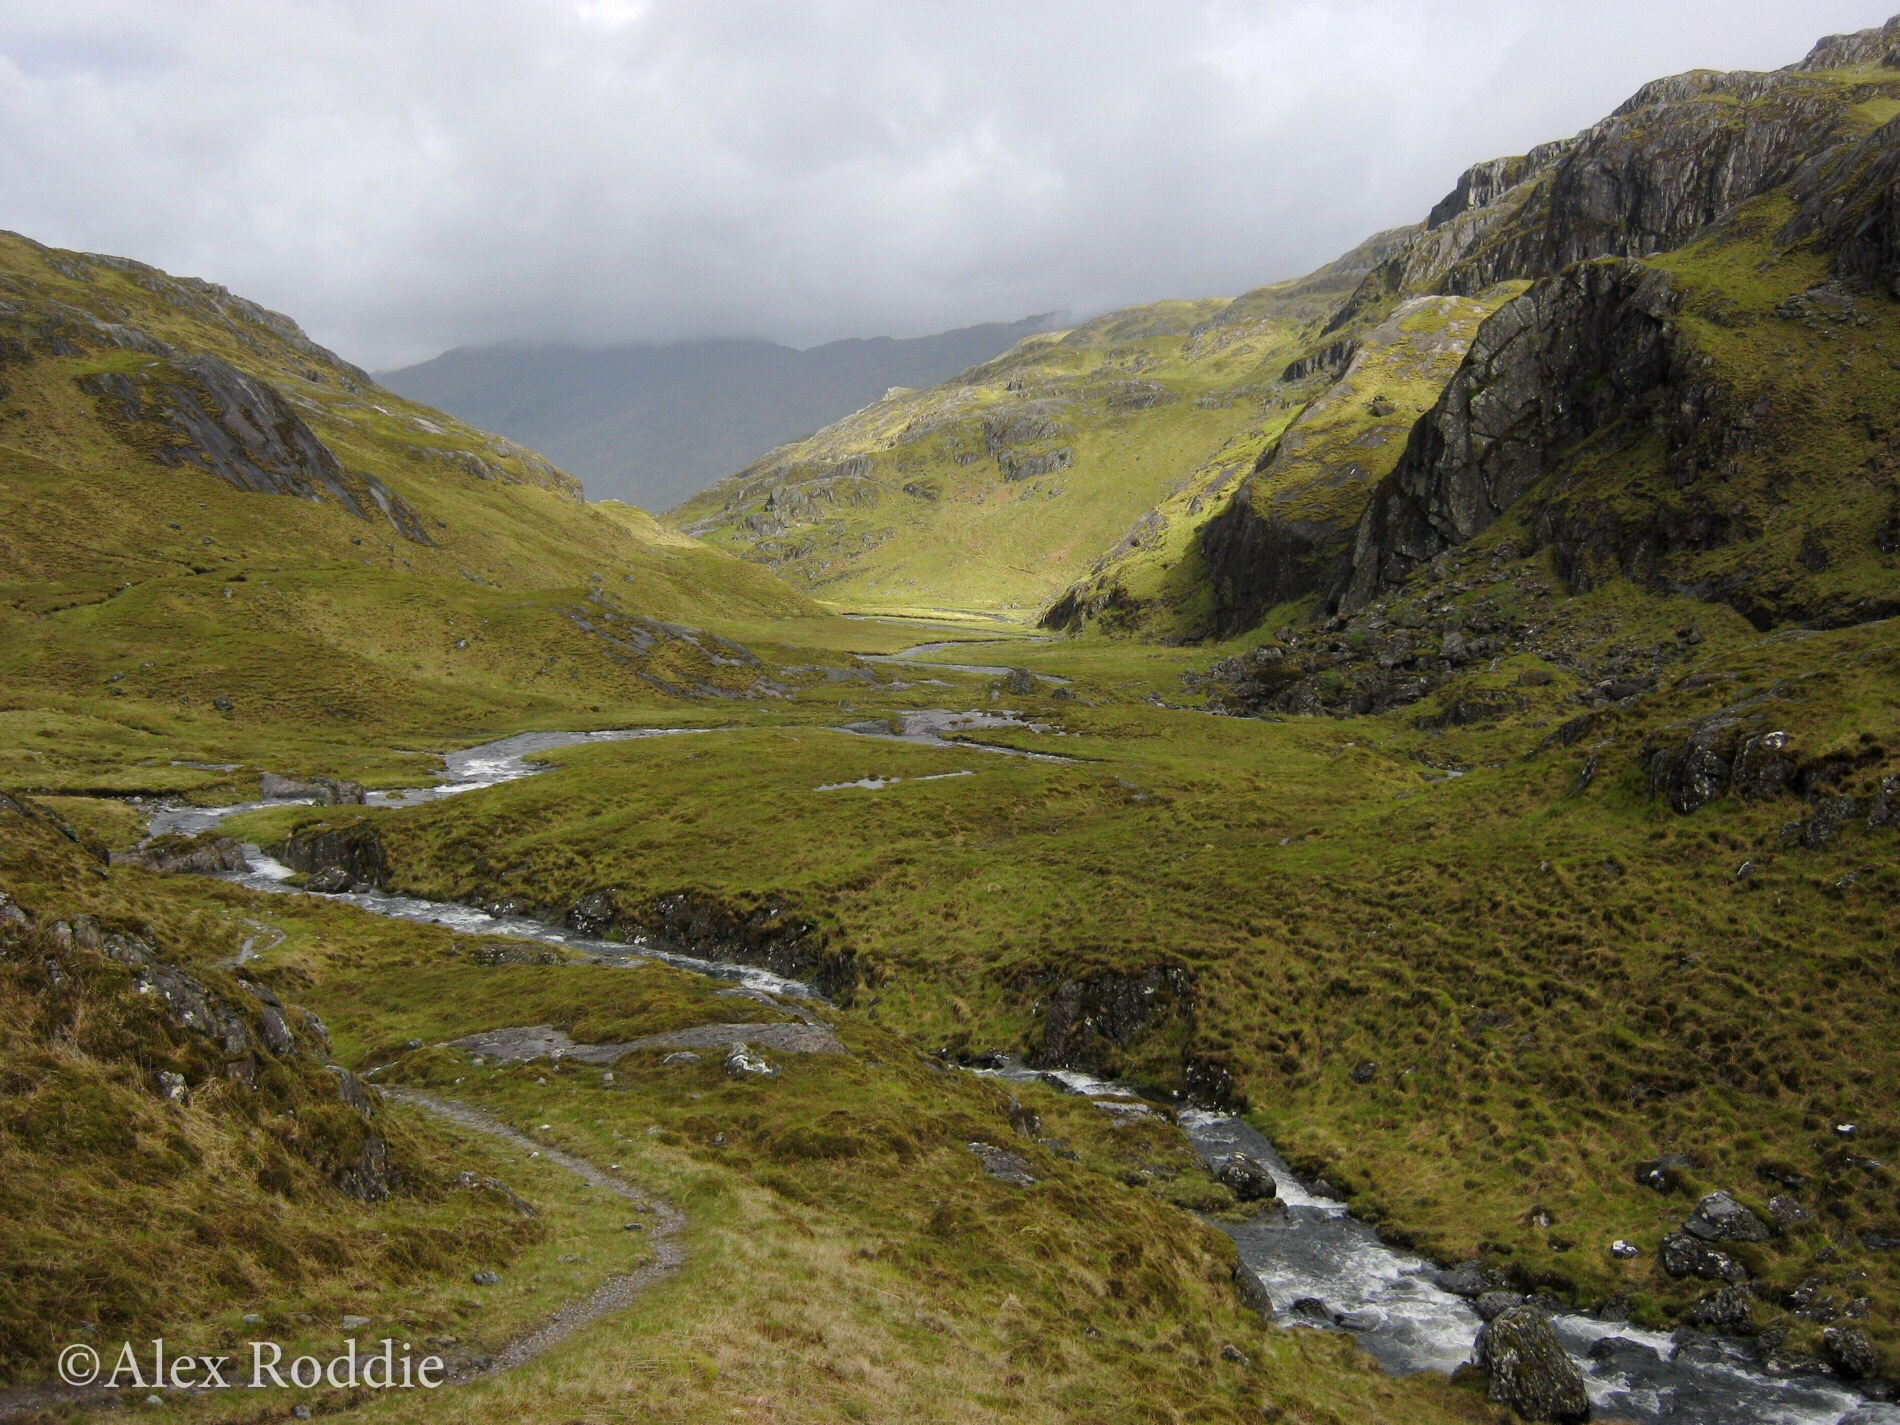 Deeper into Knoydart, the Finiskaig River presents another challenging crossing